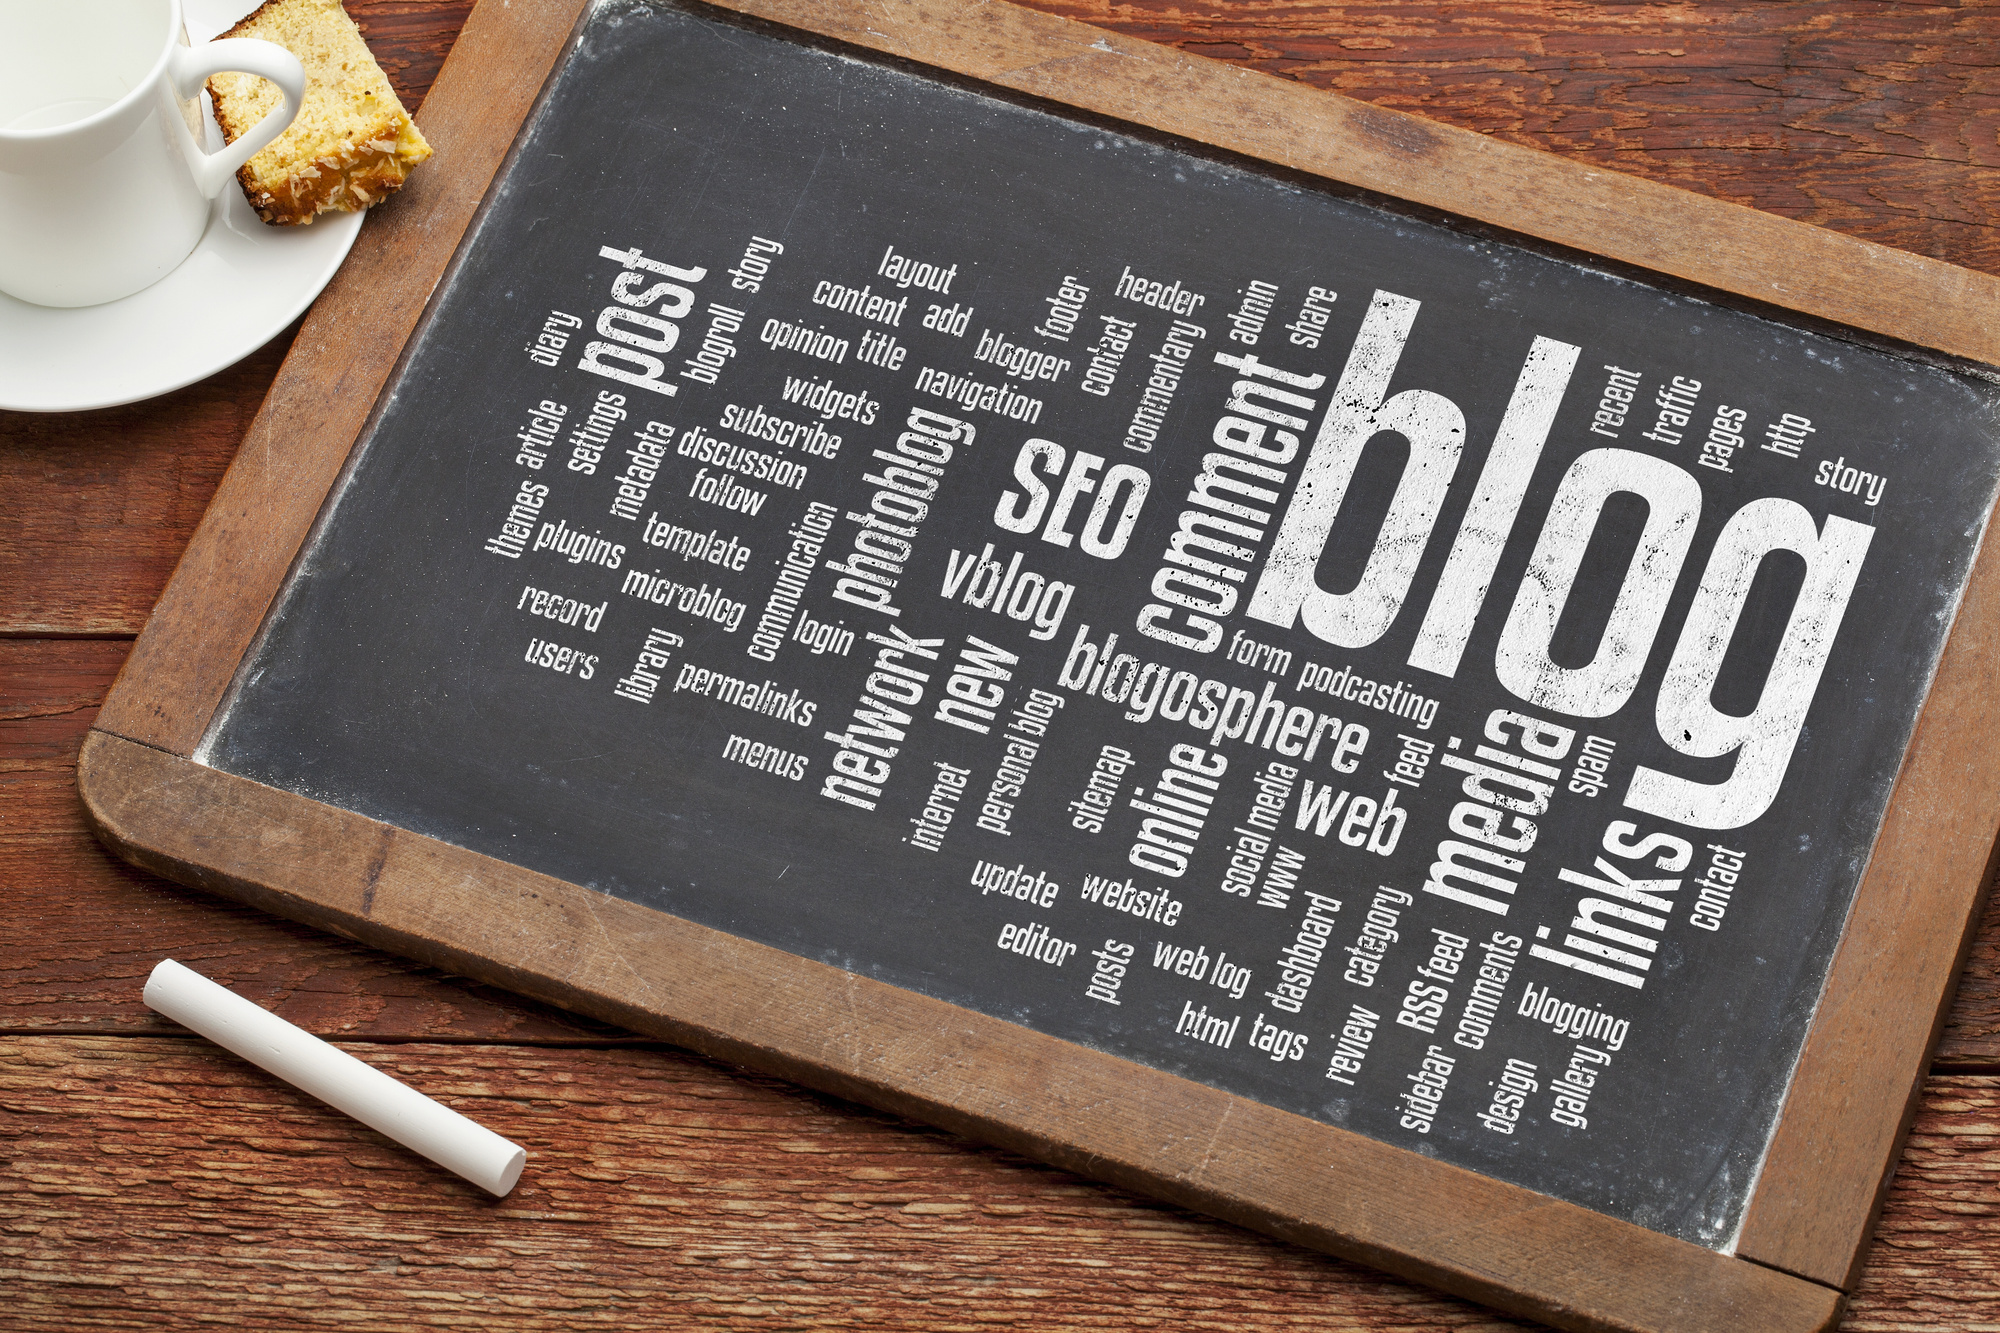 WordPress Vs HTML: Which is Better for Blogs?